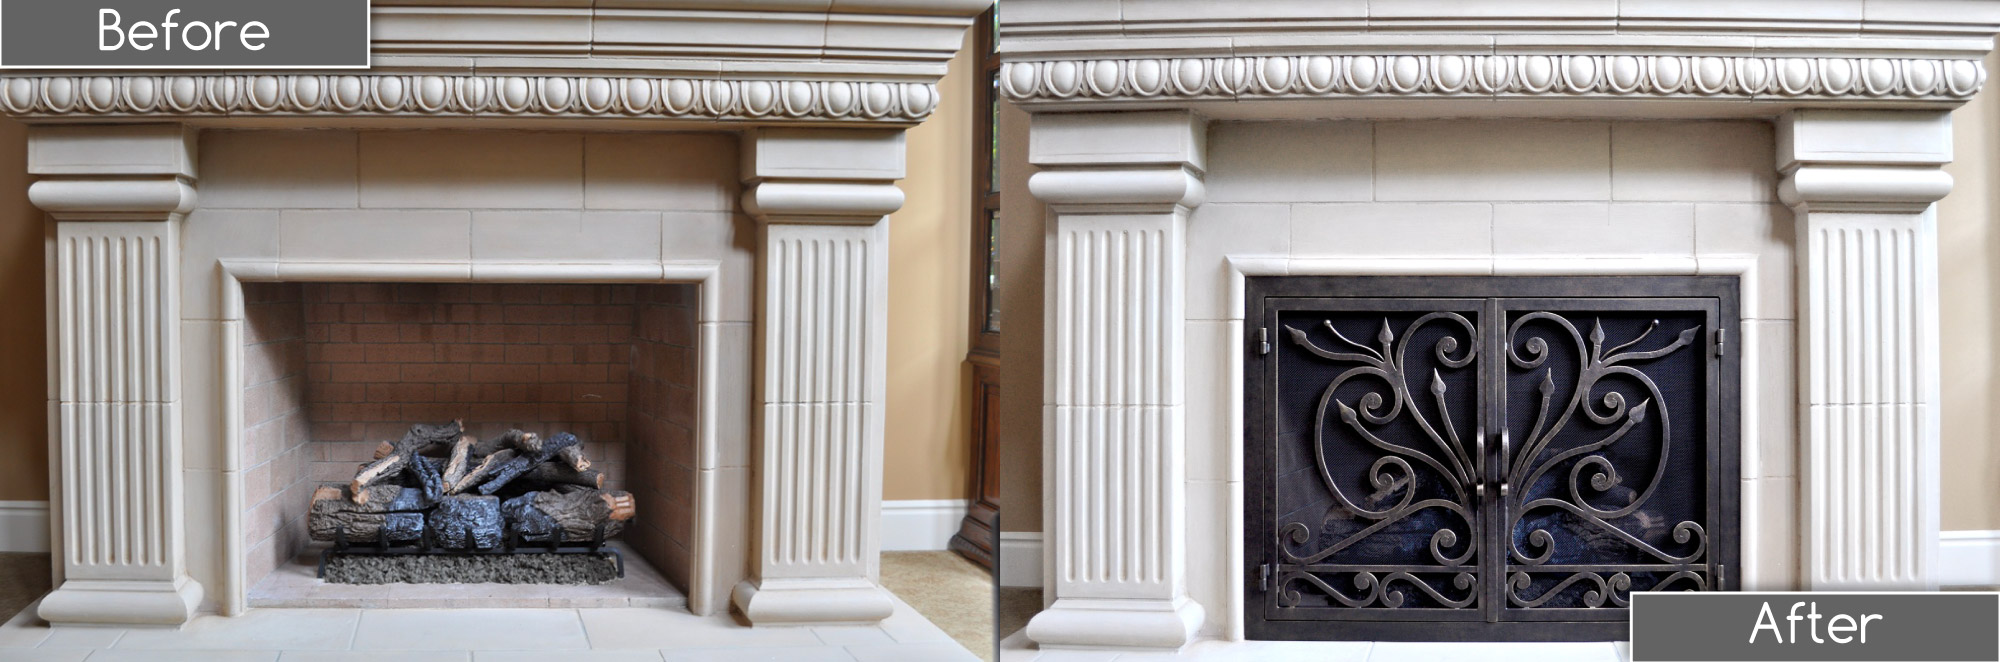 Big Sur 3 Fireplace Door Before and After